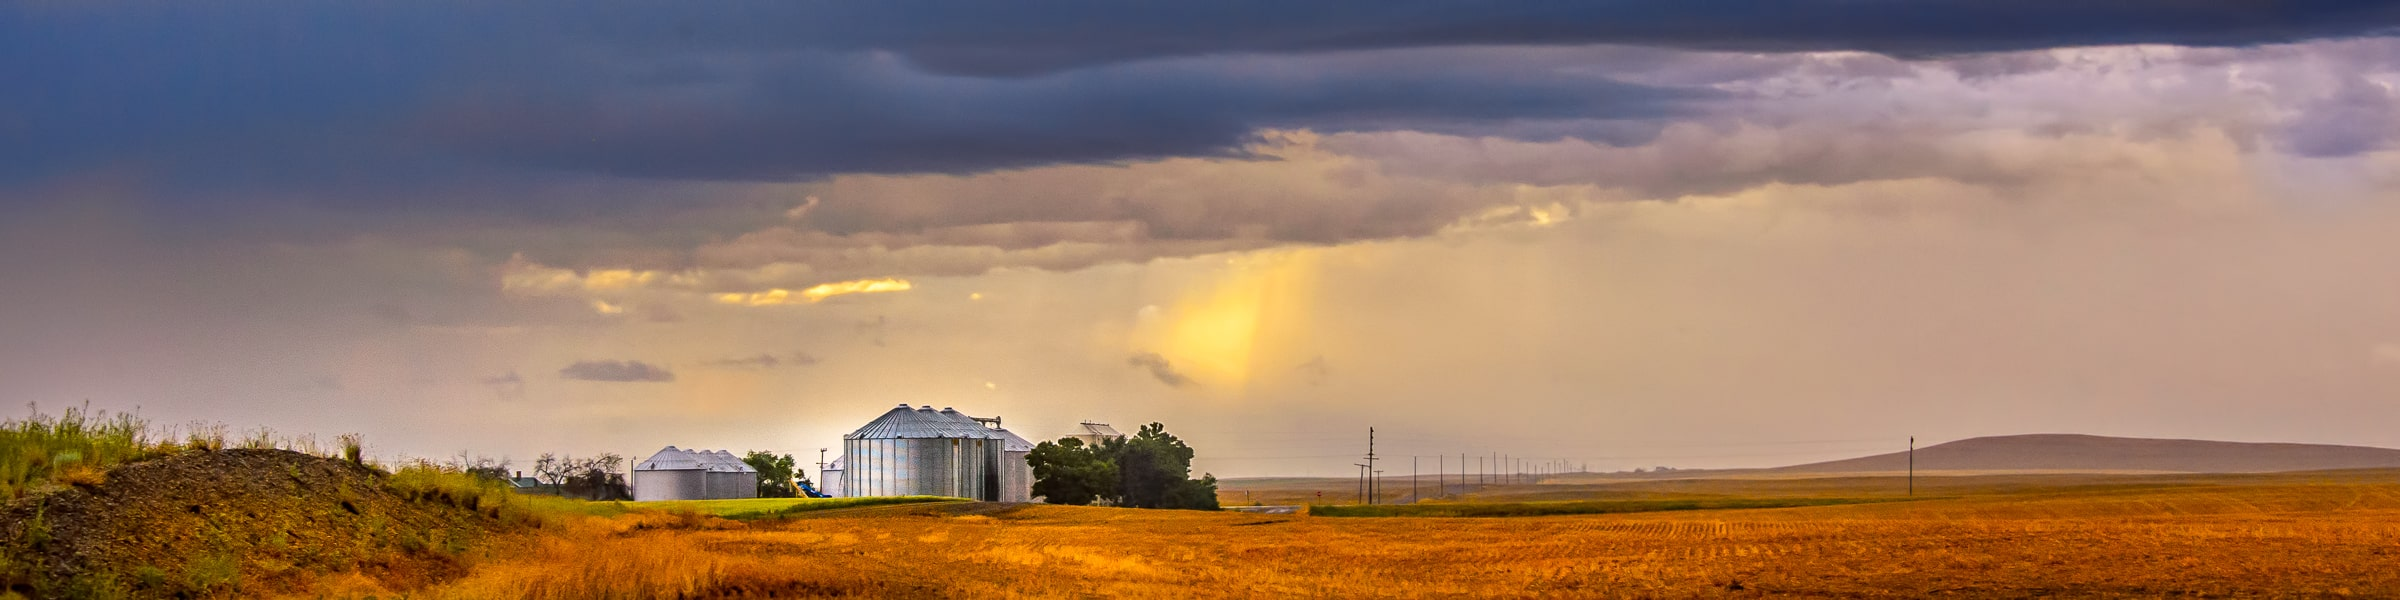 Storage silos on a wheat farm in Montana glisten in a summer storm. Montana Summer Landscapes